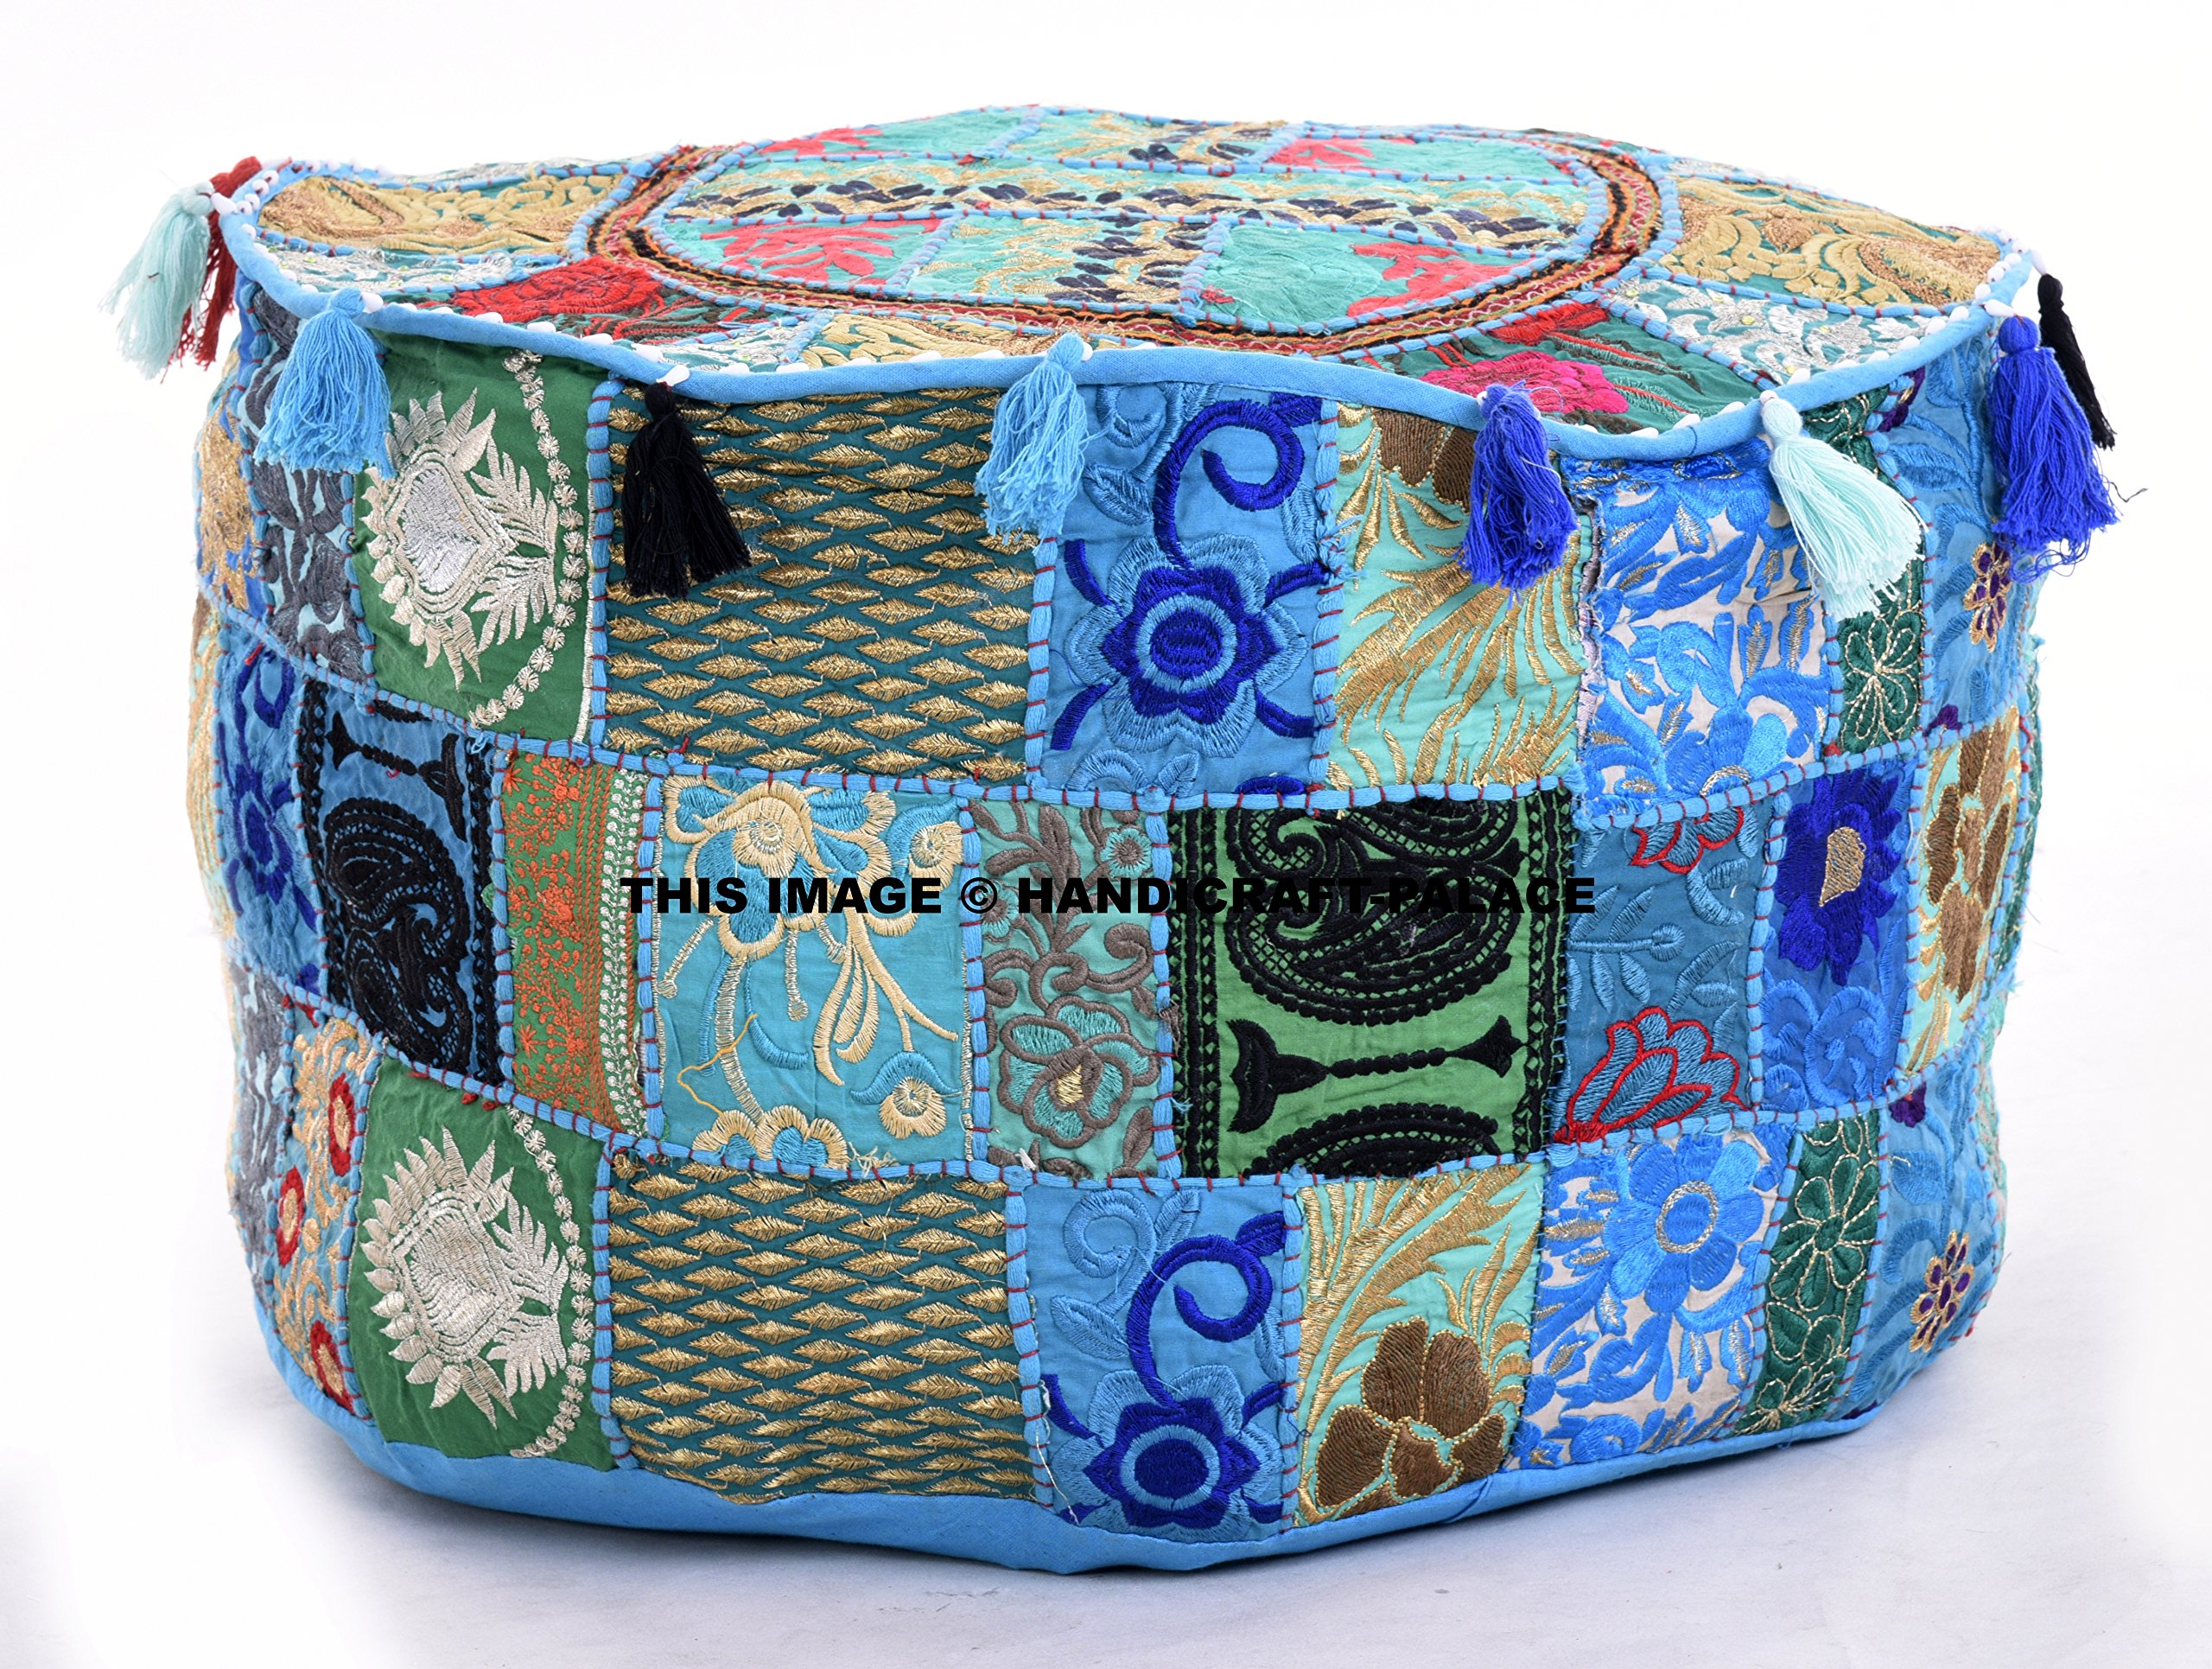 Handicraft-Palace Indian Embroidered Patchwork Ottoman Cover,Traditional Indian Decorative Pouf Ottoman,Indian Comfortable Floor Cotton Cushion Ottoman Pouf,Designs Ethnic Patchwork Pouf 14x22'' By